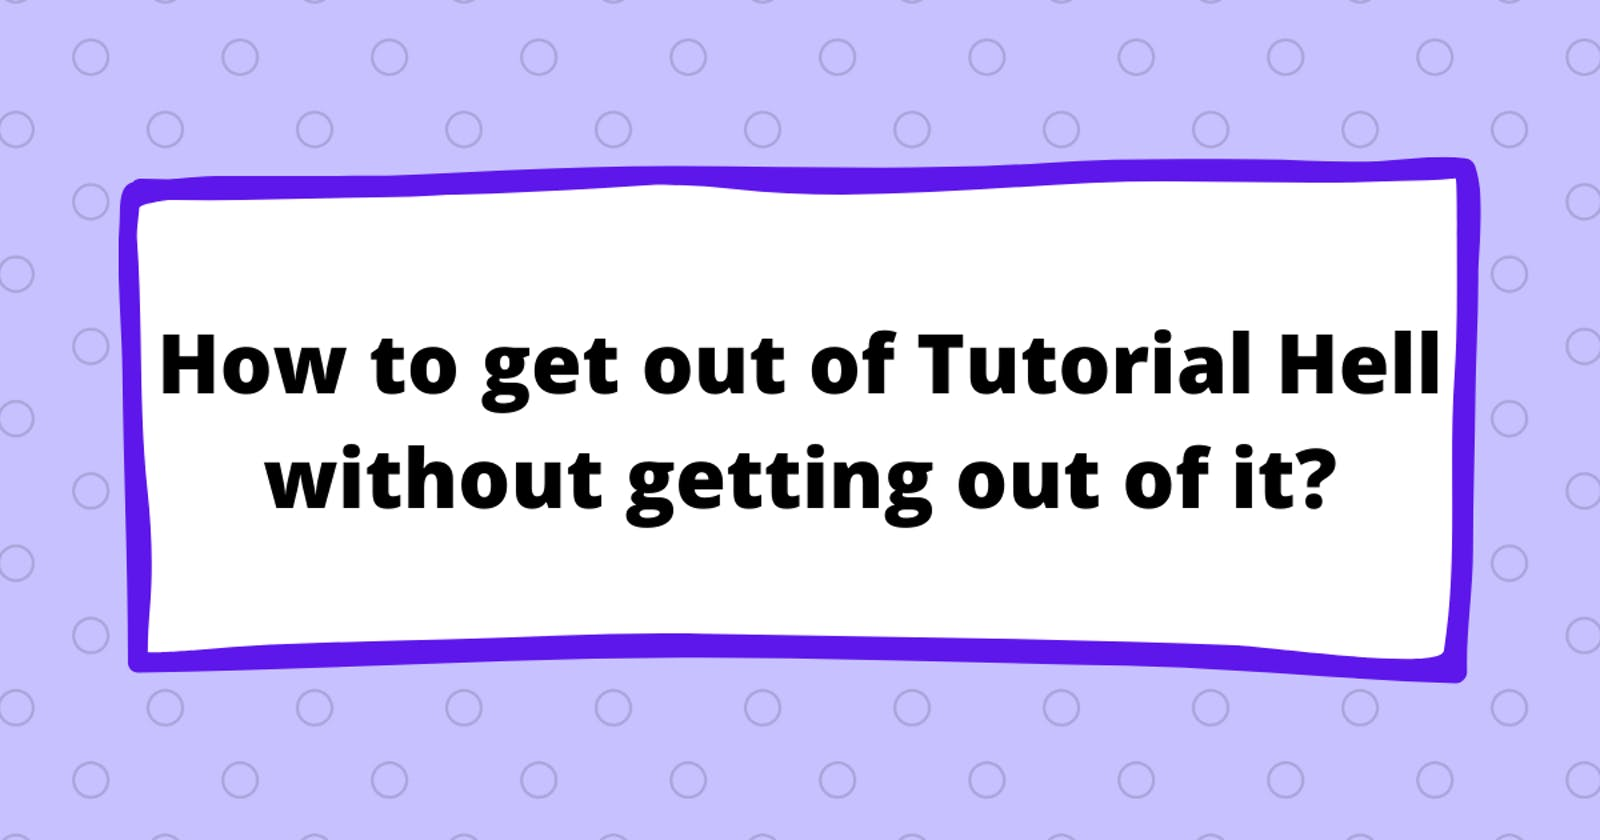 How to get out of Tutorial Hell without getting out of it?